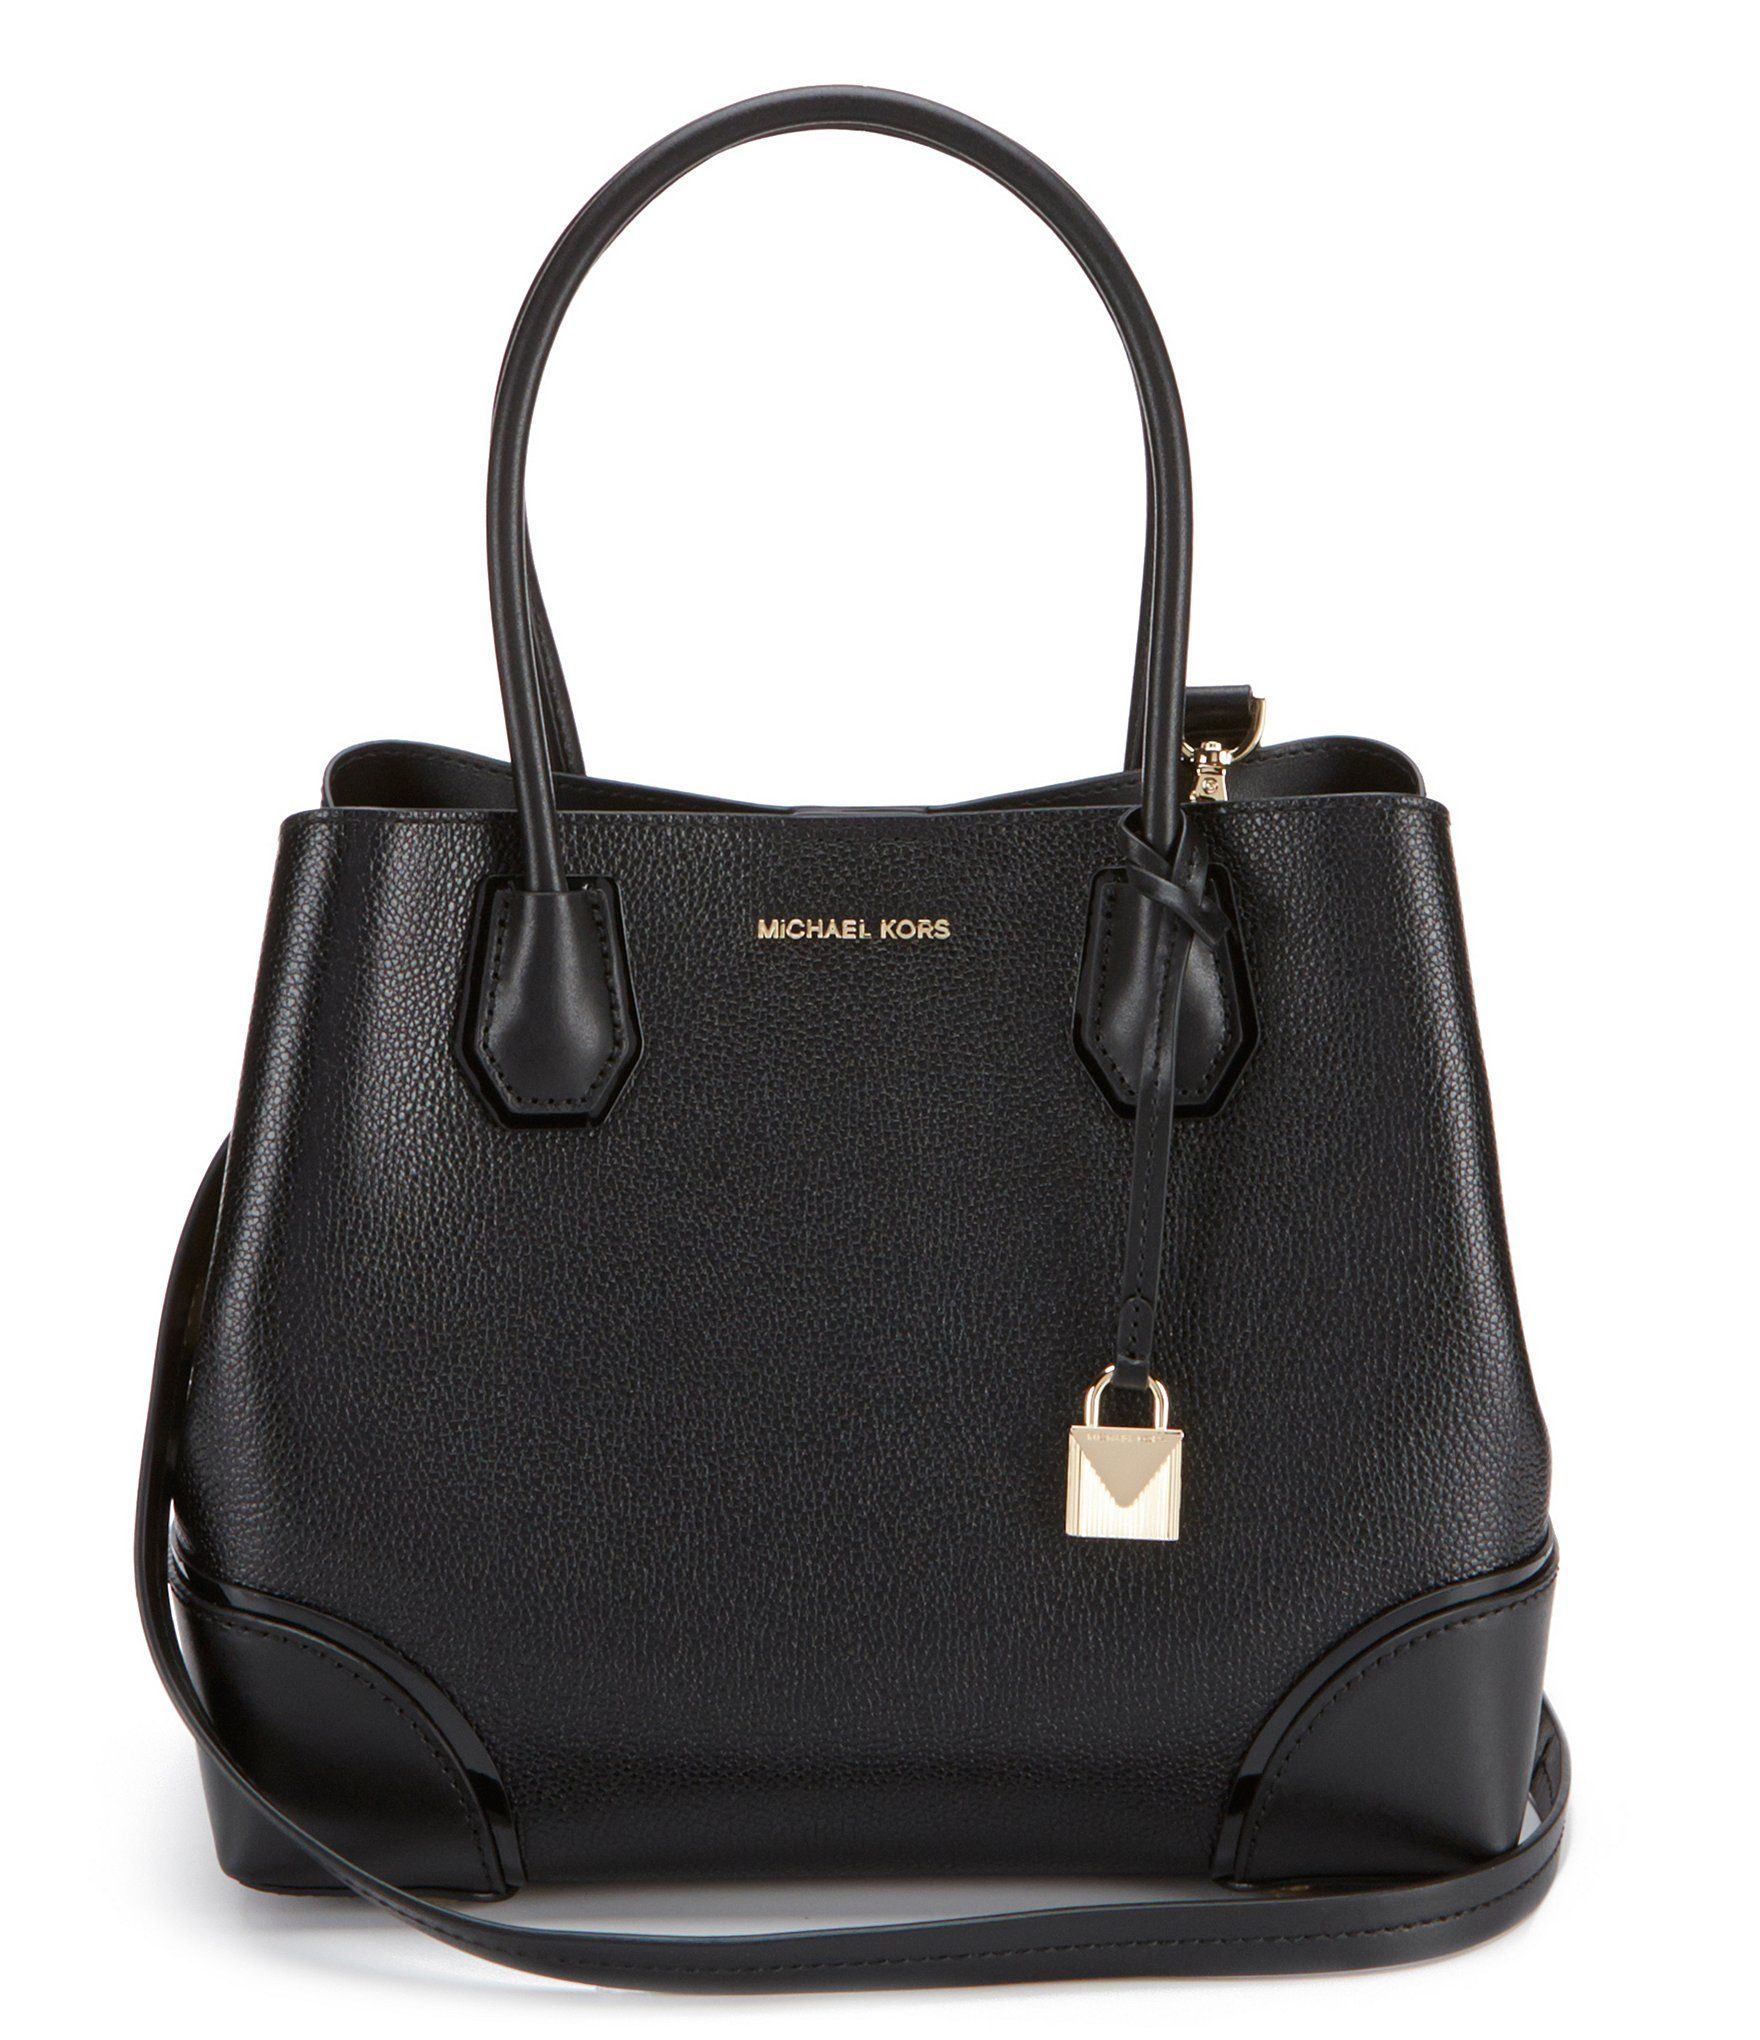 006b005ebd3c Shop for MICHAEL Michael Kors Studio Mercer Center-Zip Tote at Dillards.com.  Visit Dillards.com to find clothing, accessories, shoes, cosmetics & more.